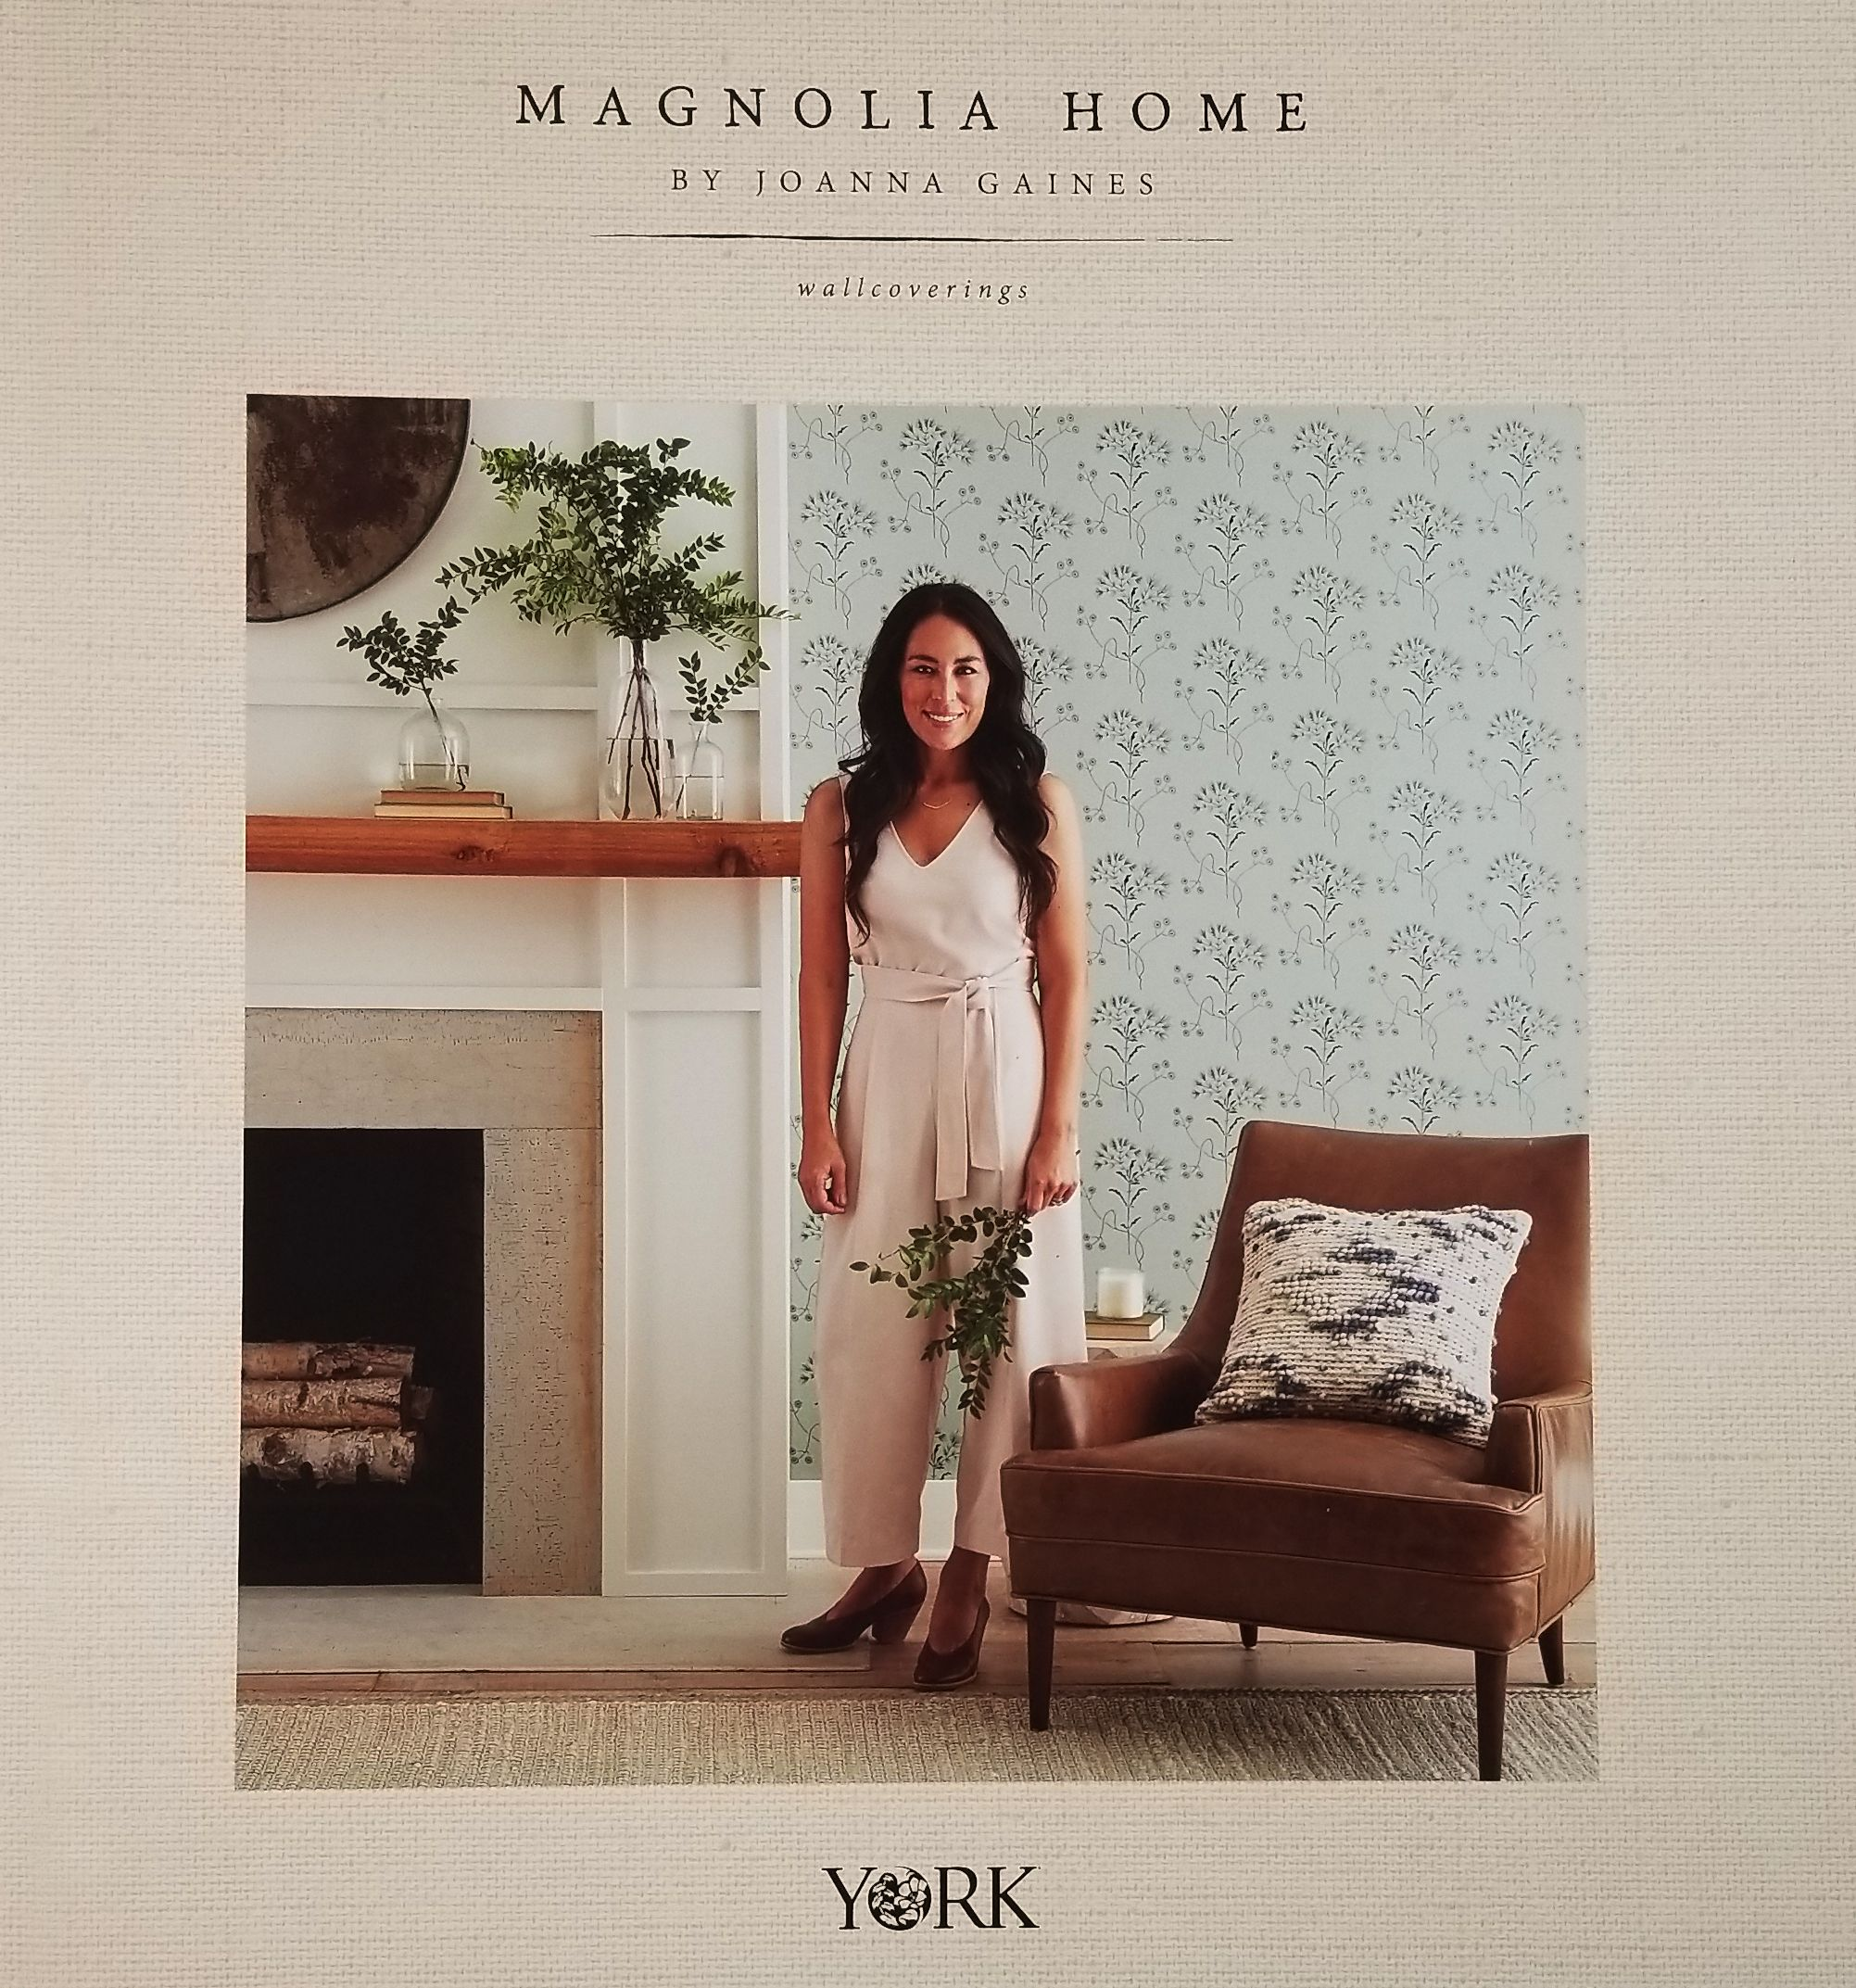 Magnolia Home By Joanna Gaines Wallpaper Leland S Wallpaper Joanna Gaines Wallpaper Magnolia Homes Home Wallpaper